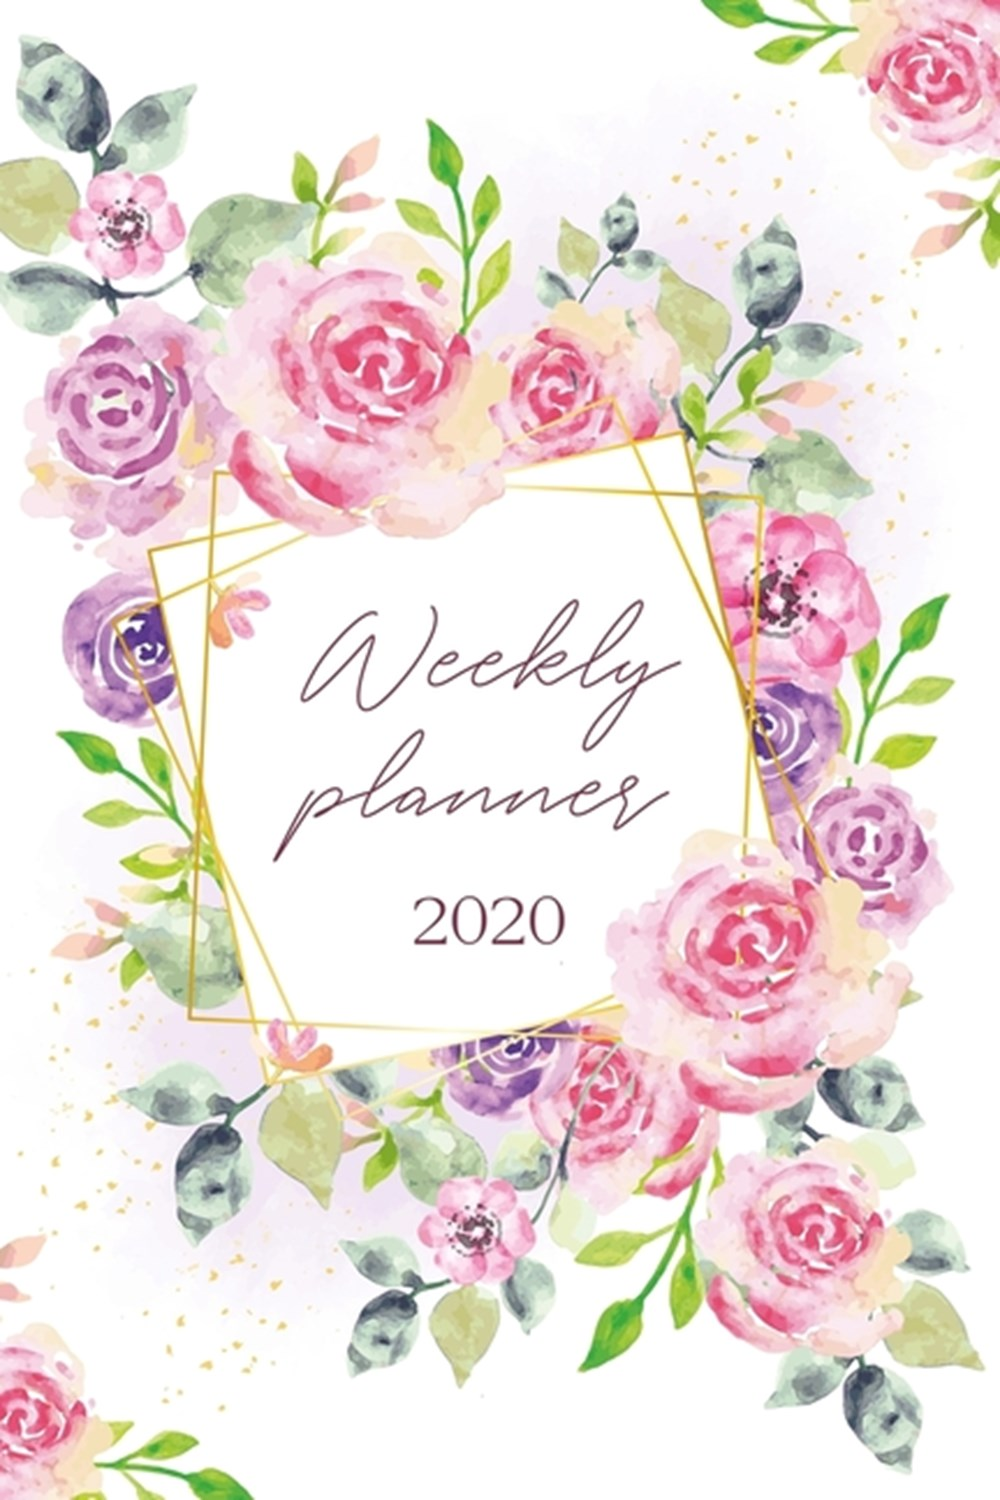 Weekly Planner 2020 Weekly And Monthly Calendar Agenda 2020 - College, School and Academic Planner